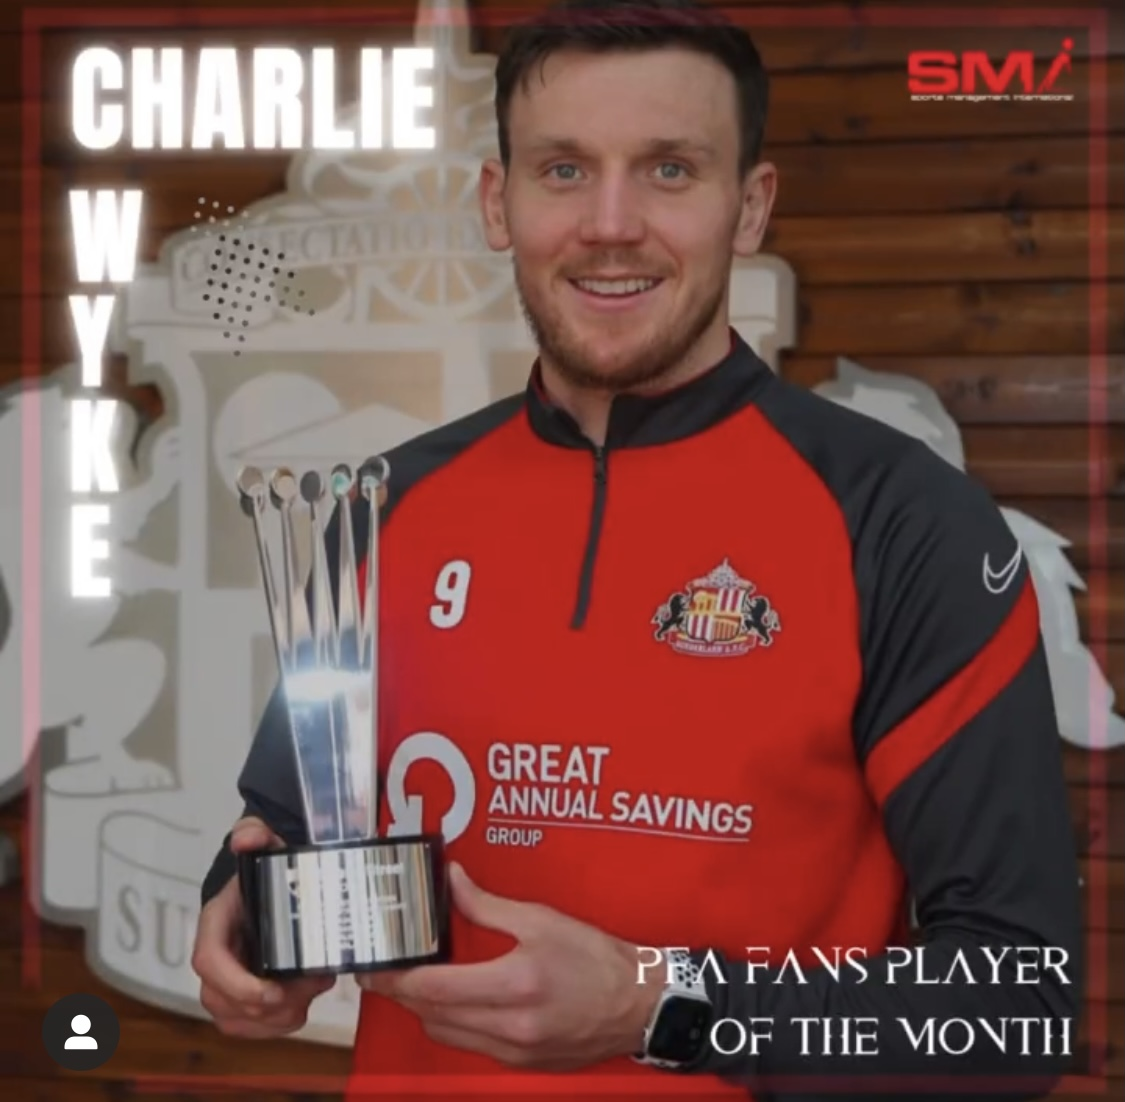 PFA Fans player of the Month Charlie Wyke